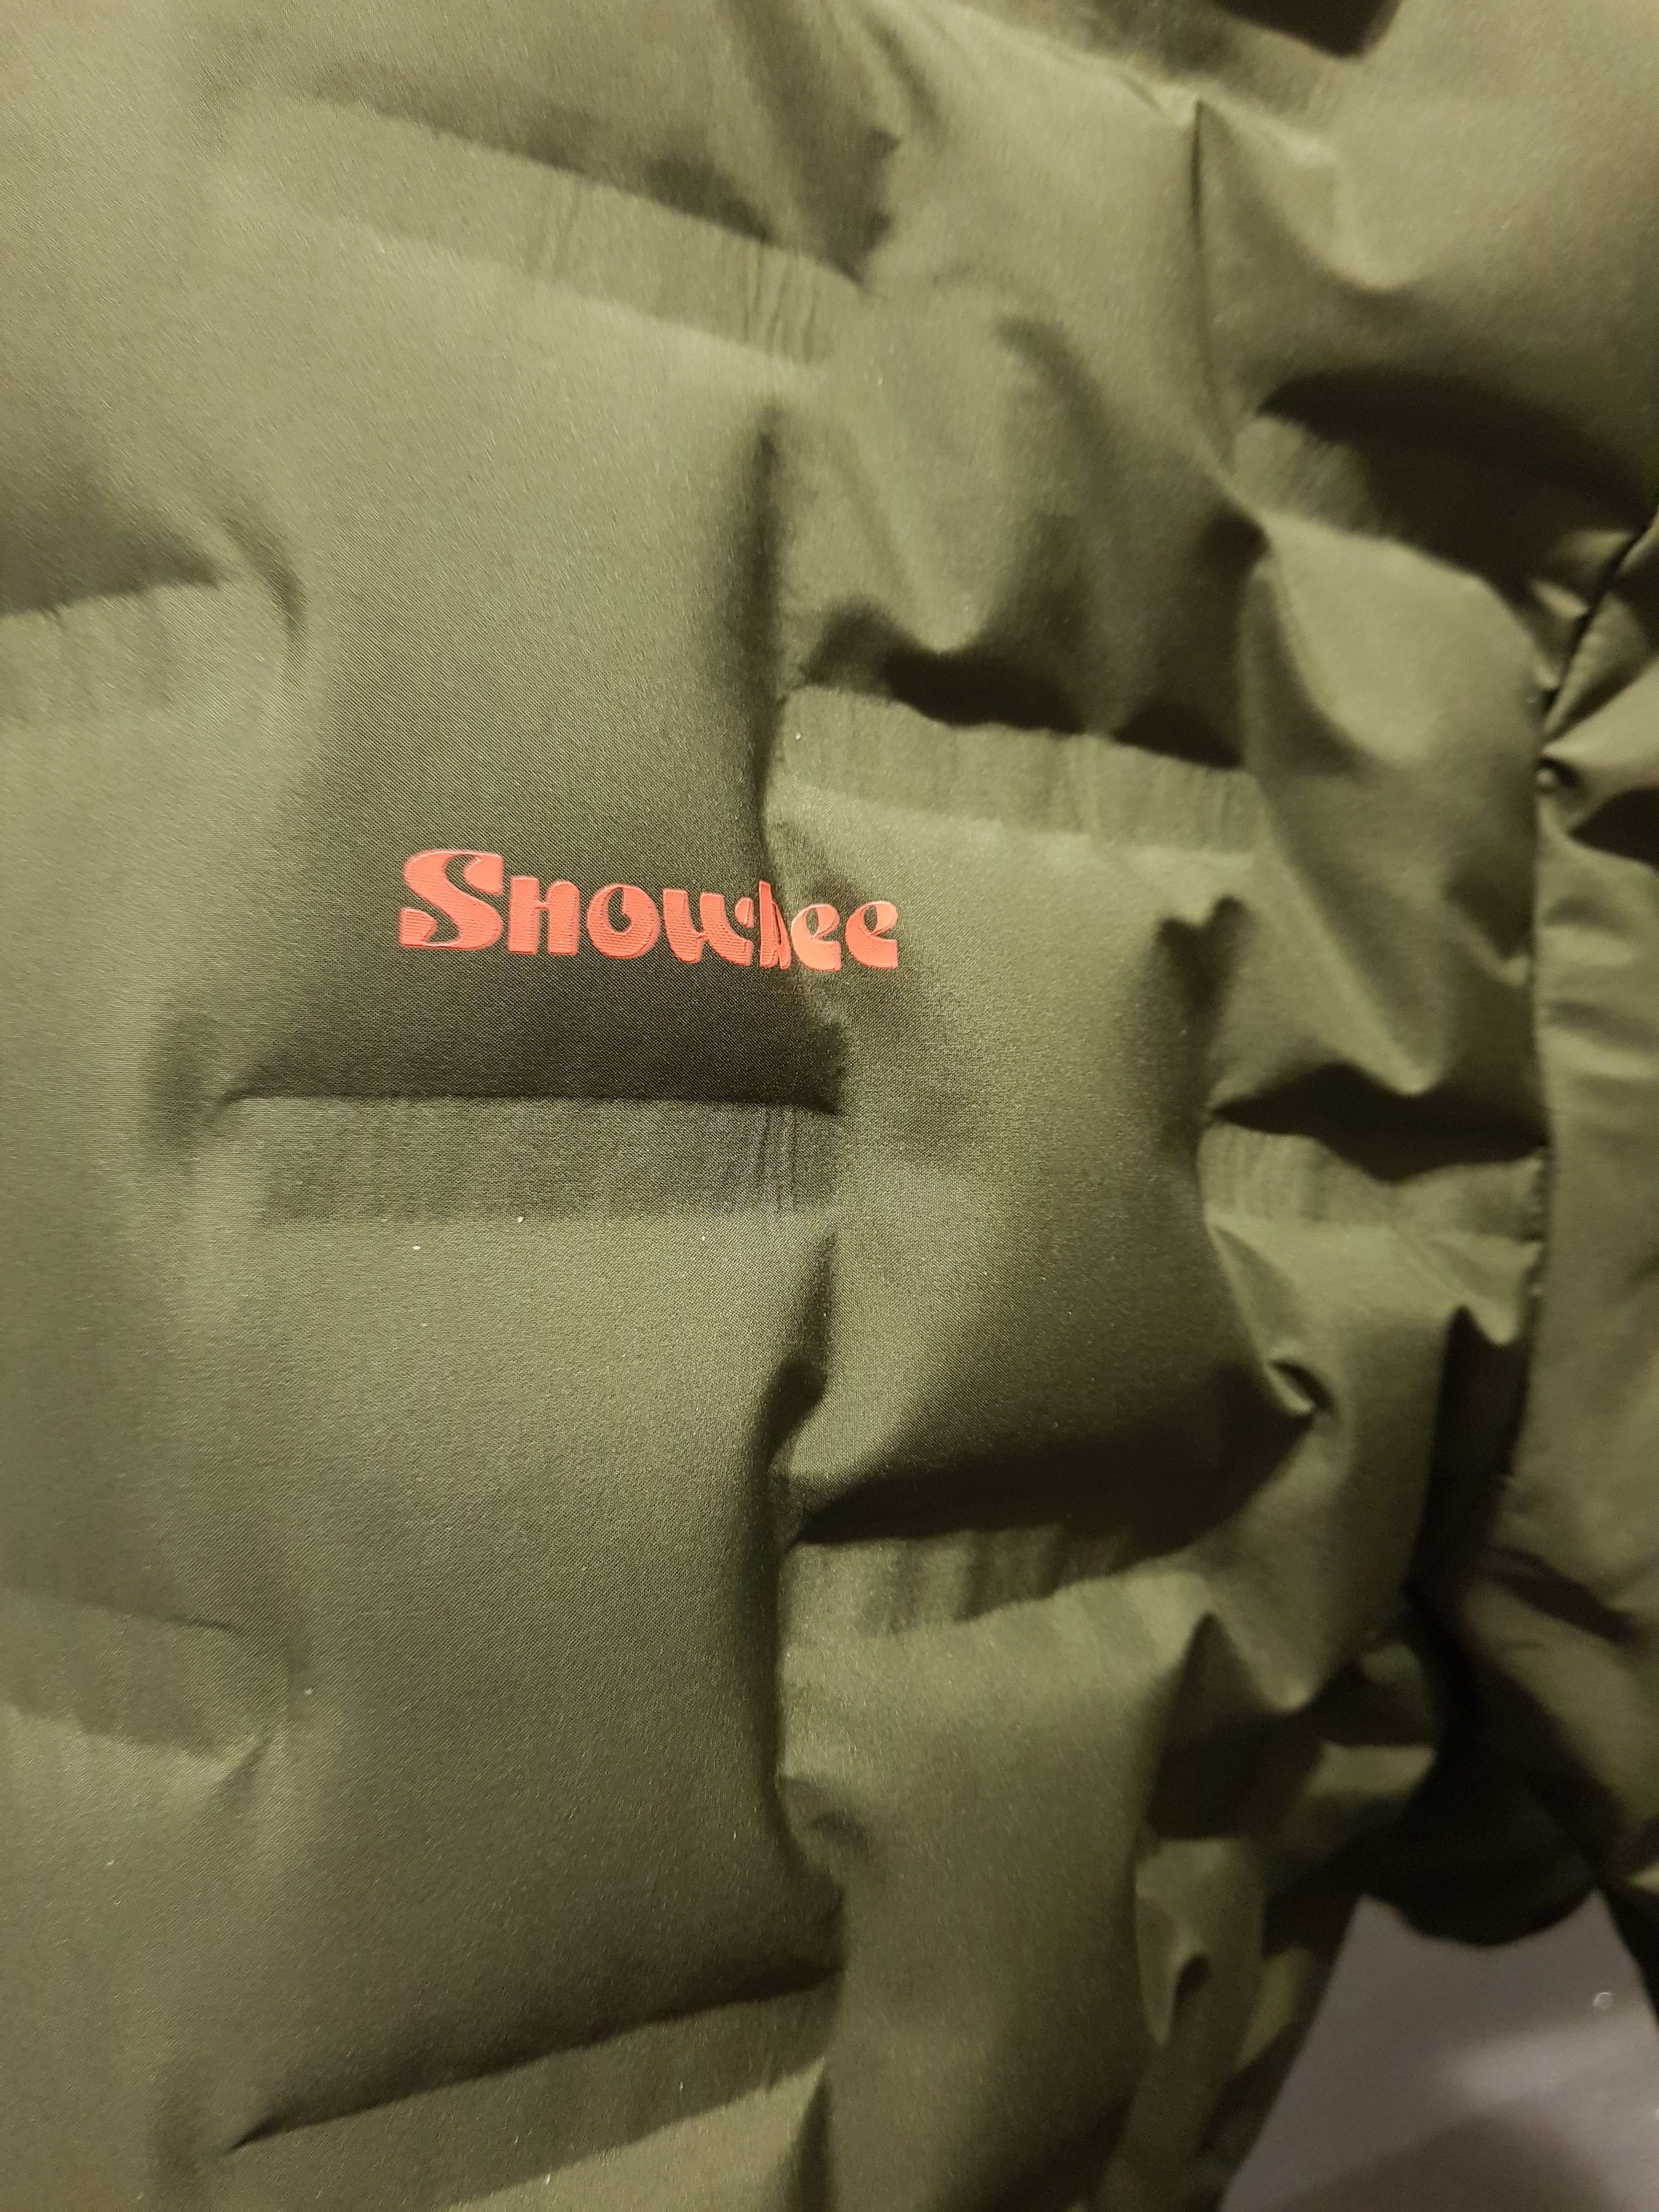 Snowbee Nivalis Down Jacket X Large